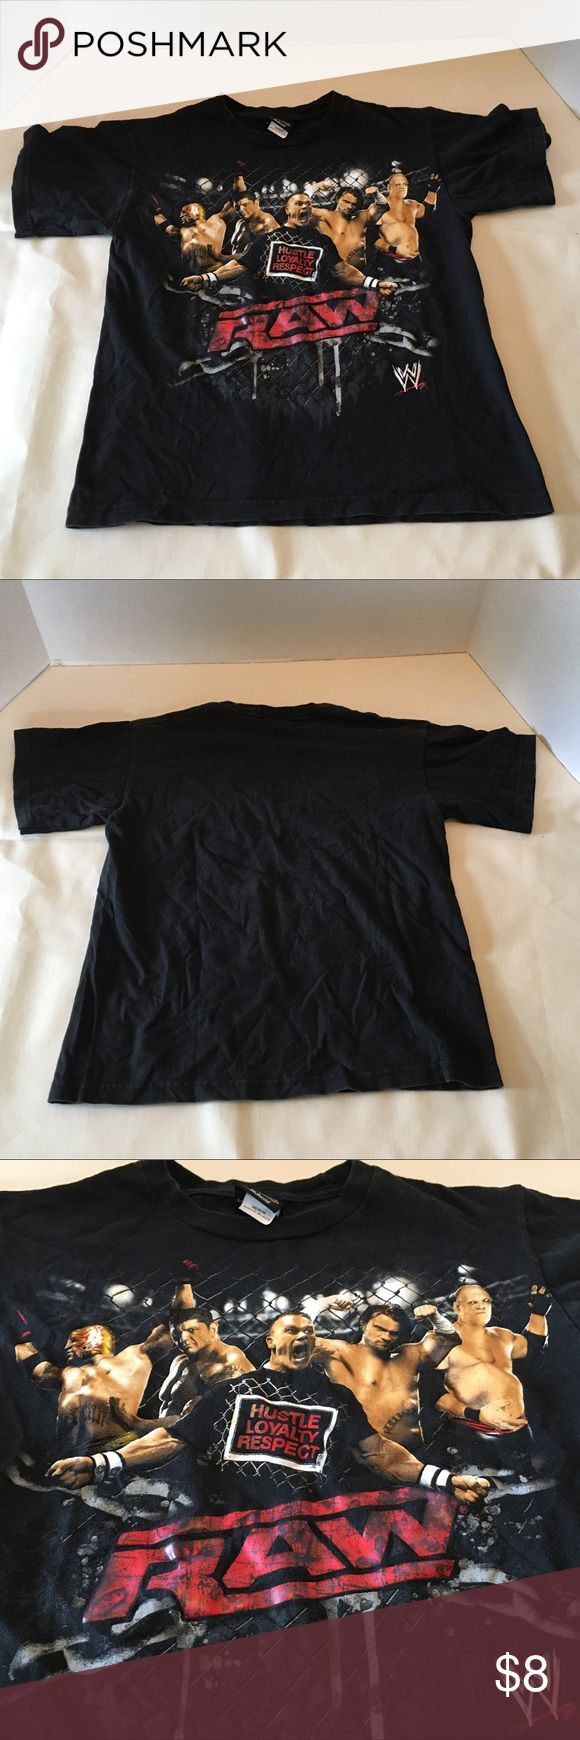 Selling this Boys Hybrid WWE Raw Black T-shirt Medium on Poshmark! My username is: doraannv. #shopmycloset #poshmark #fashion #shopping #style #forsale #Hybrid #Other